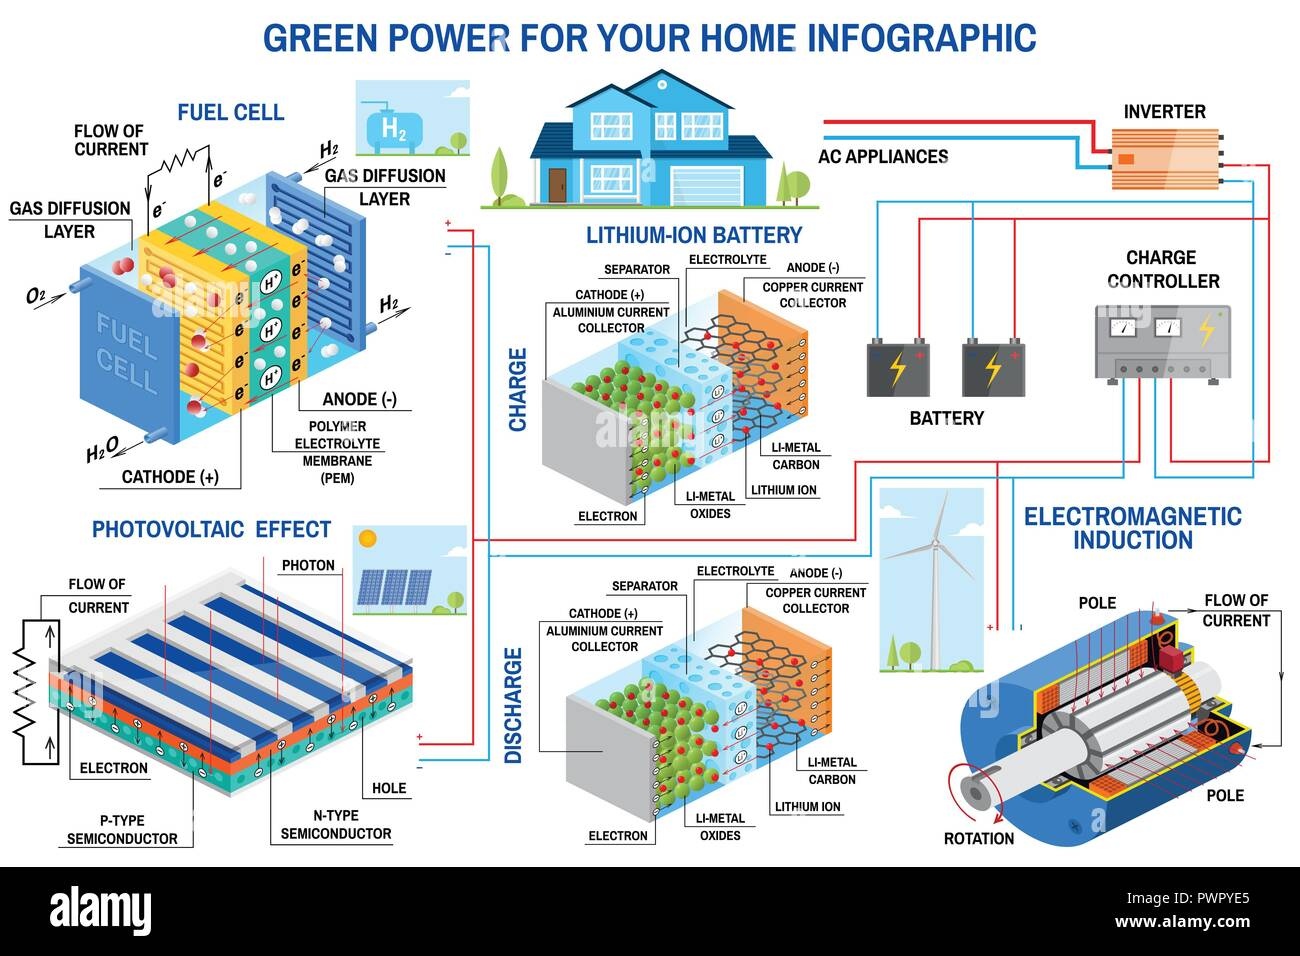 Solar panel, fuel cell and wind power generation system for home